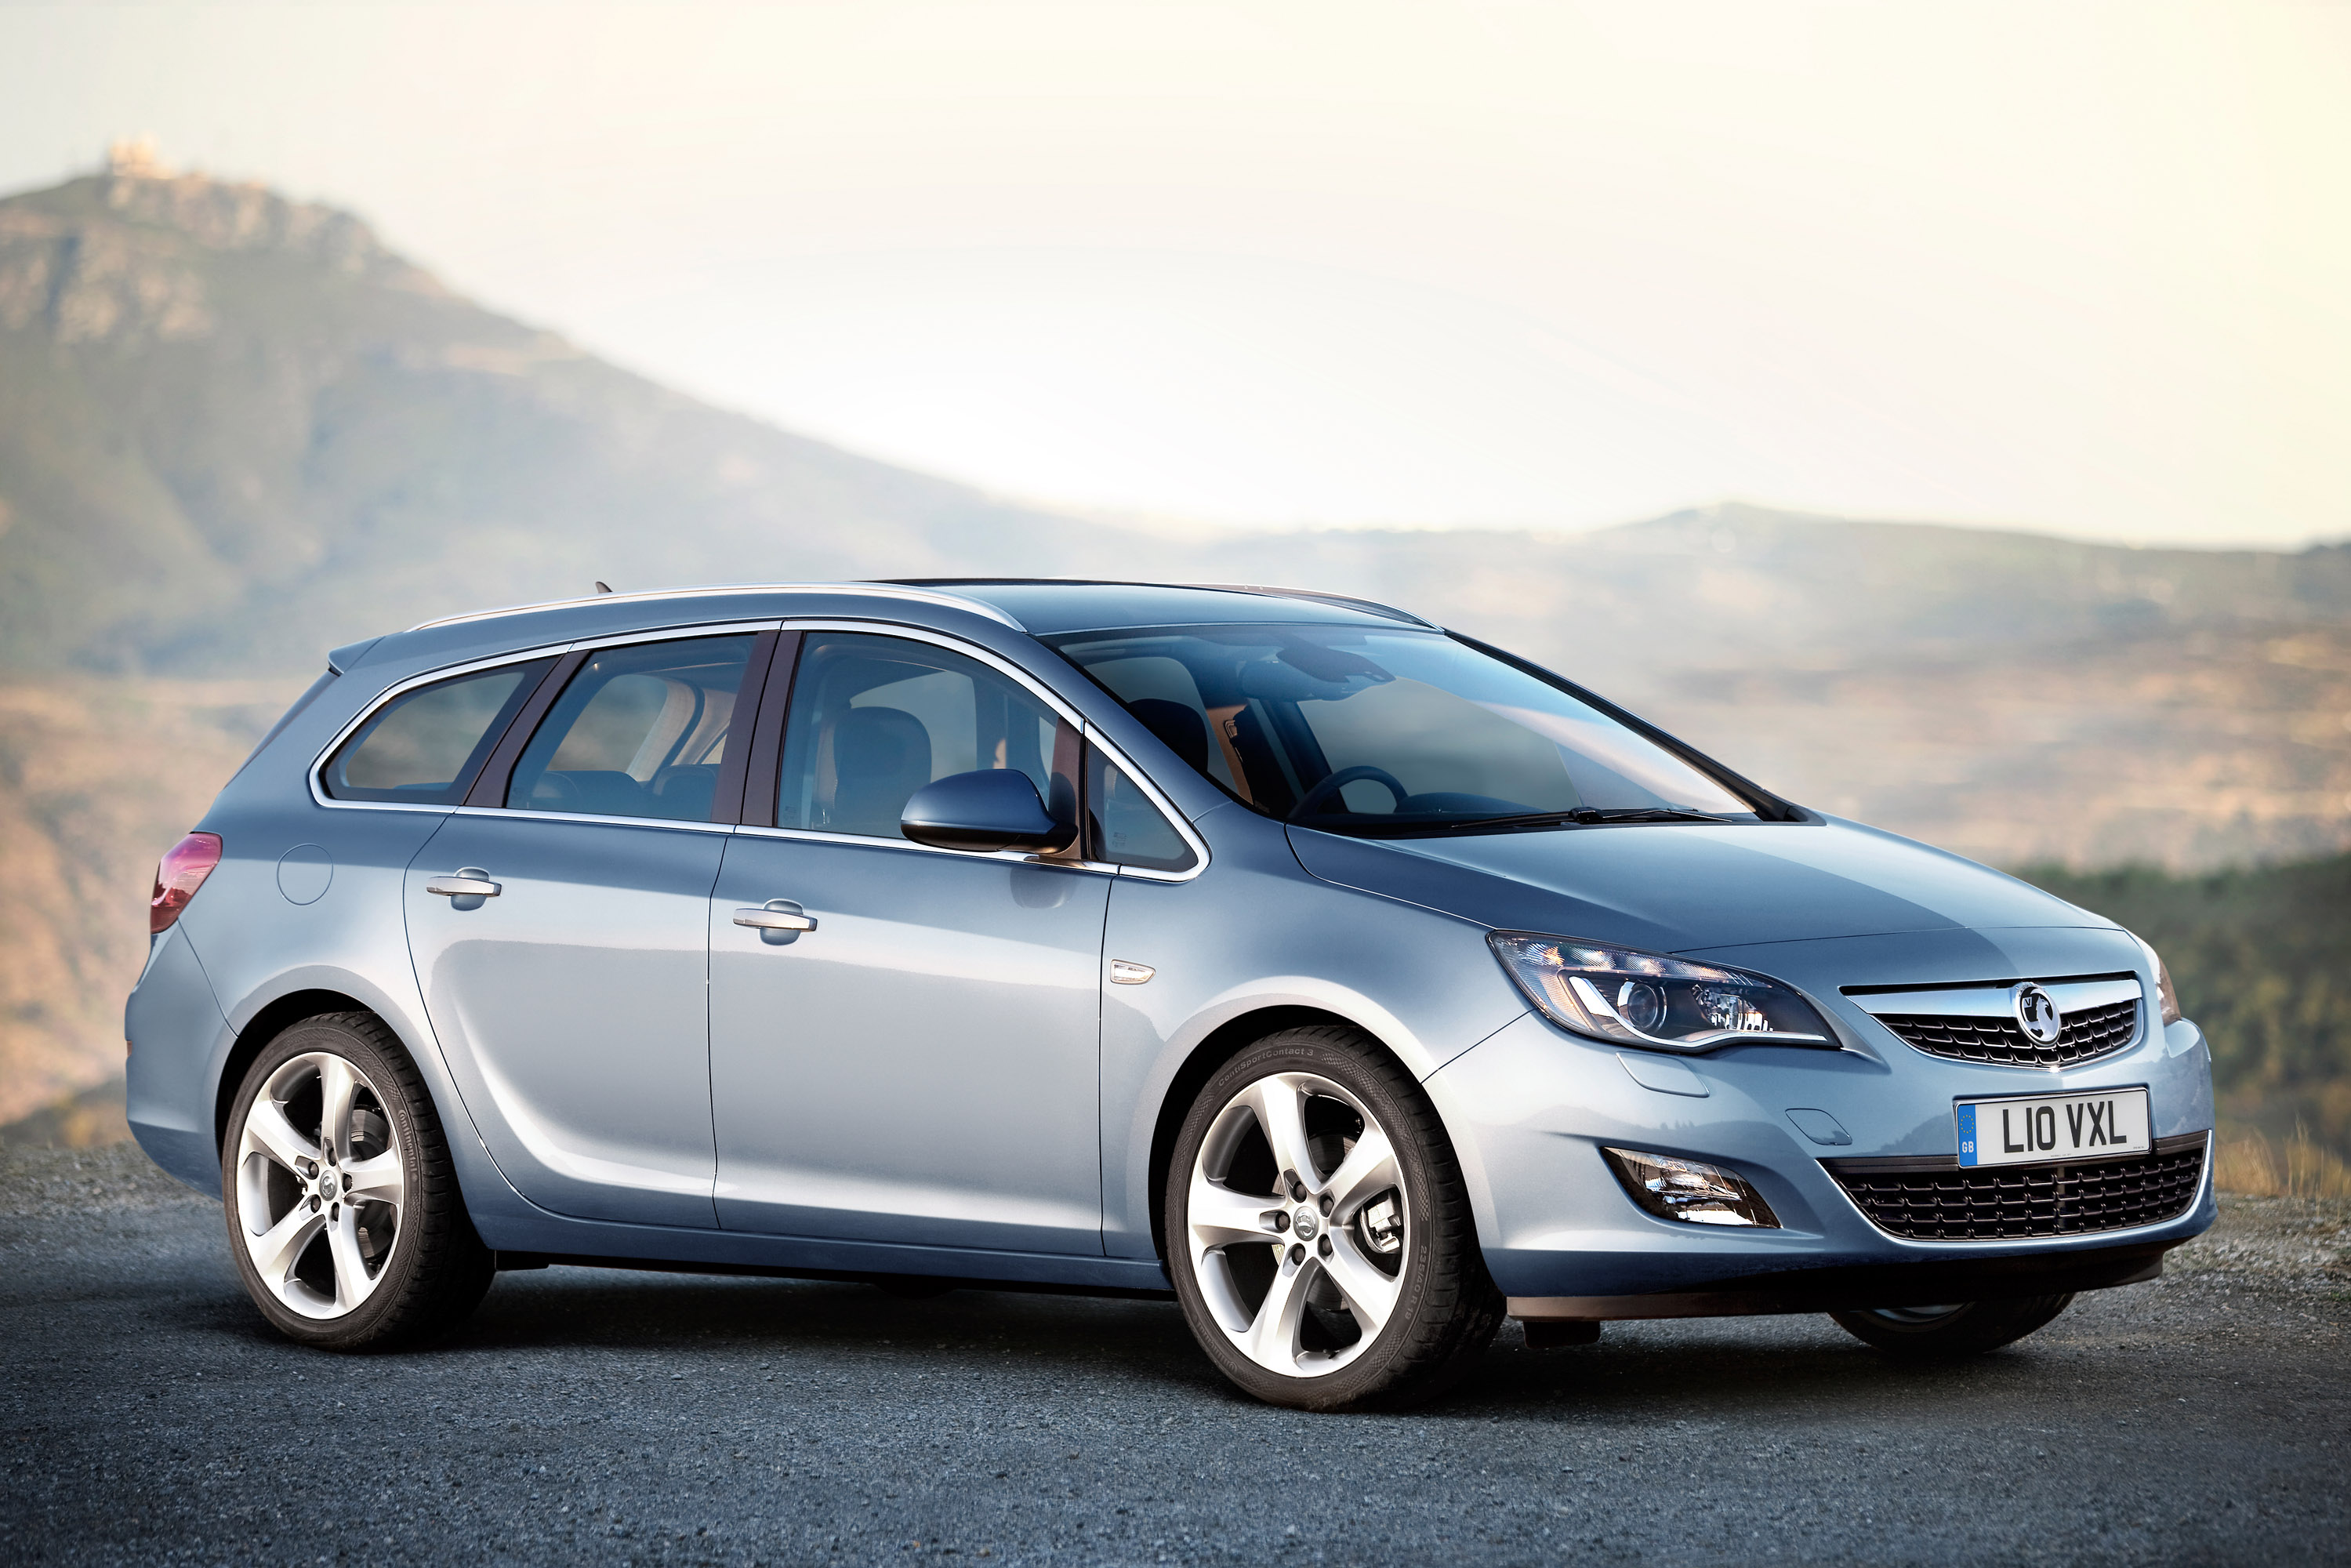 2011 vauxhall astra sports tourer full details. Black Bedroom Furniture Sets. Home Design Ideas